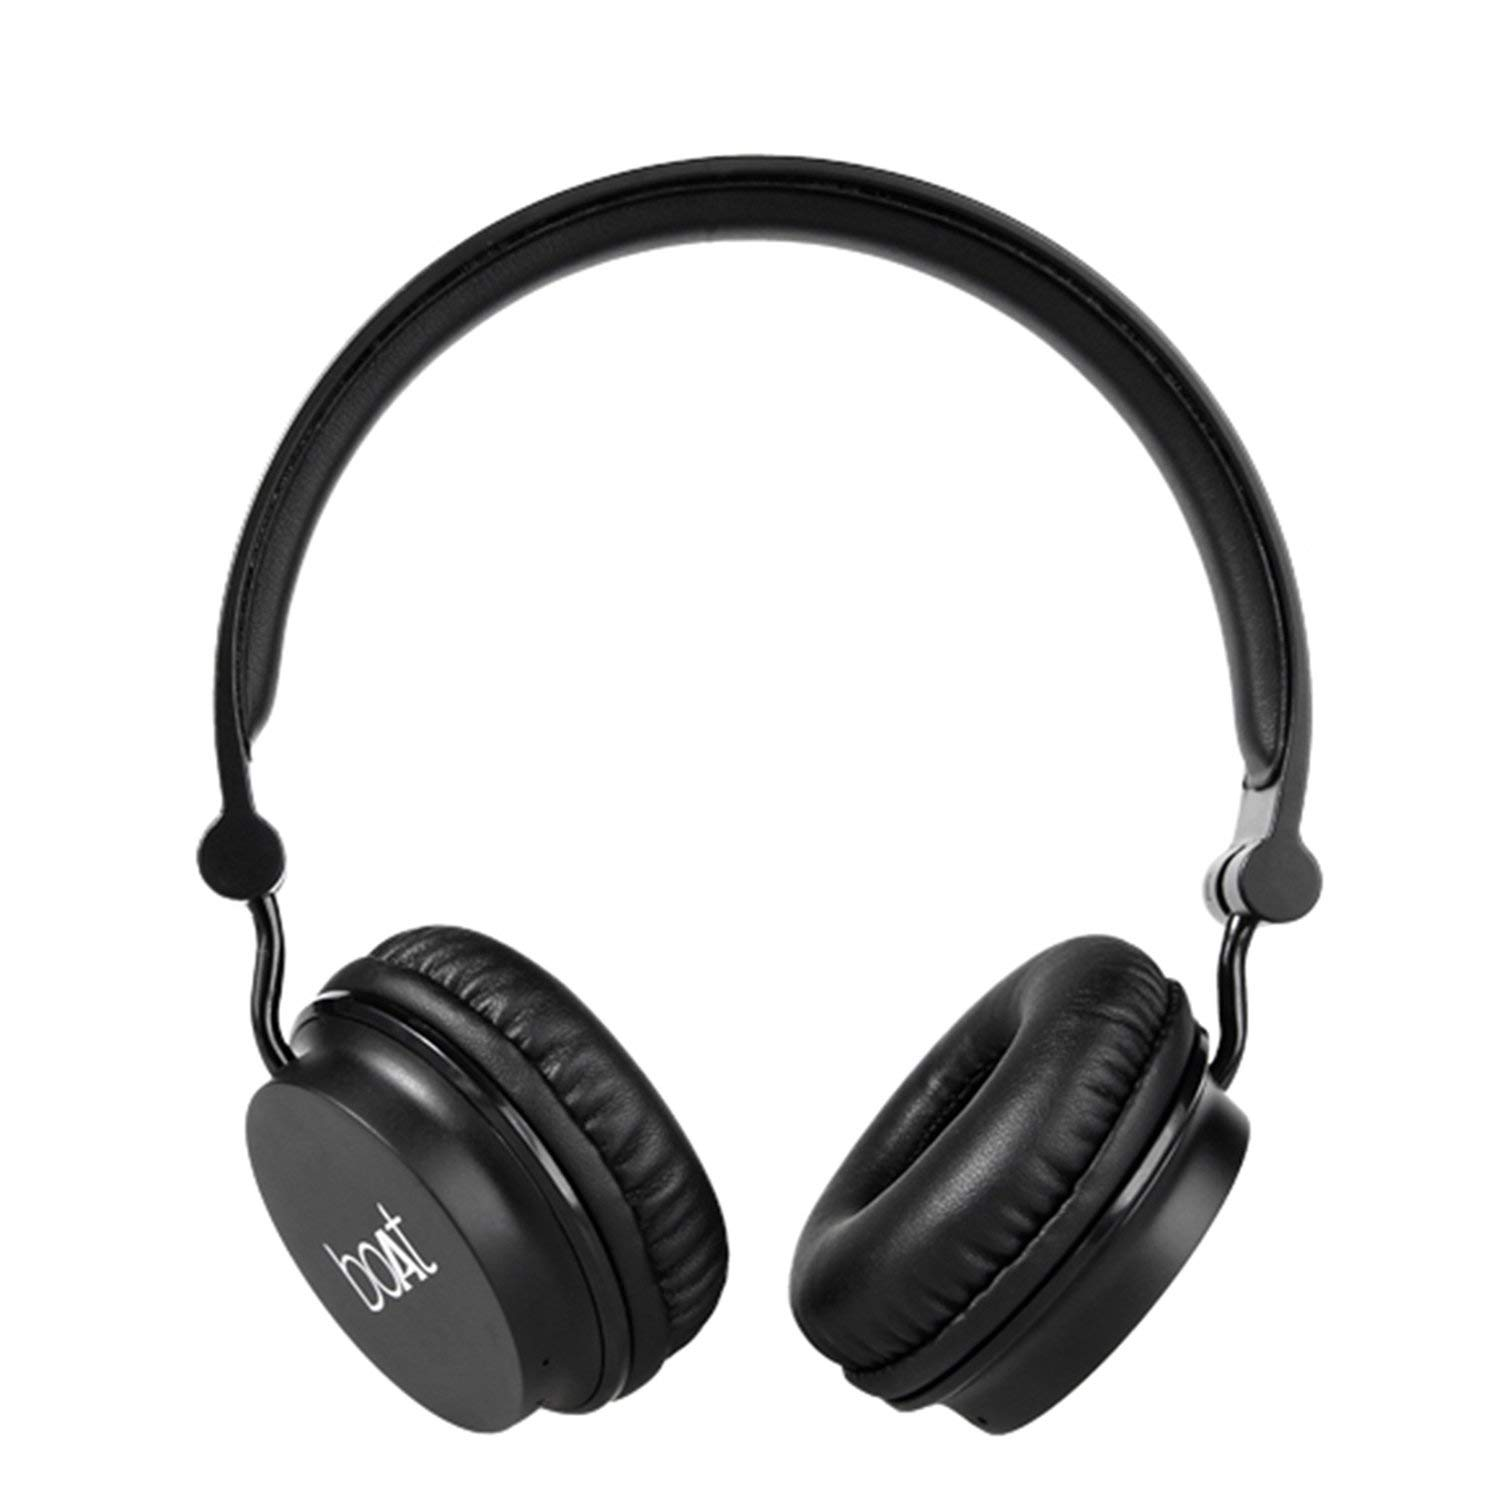 Amazon Deal Of The Day Sennheiser Jbl And Boat Headphones Above 40 Off In Amazon India Sale